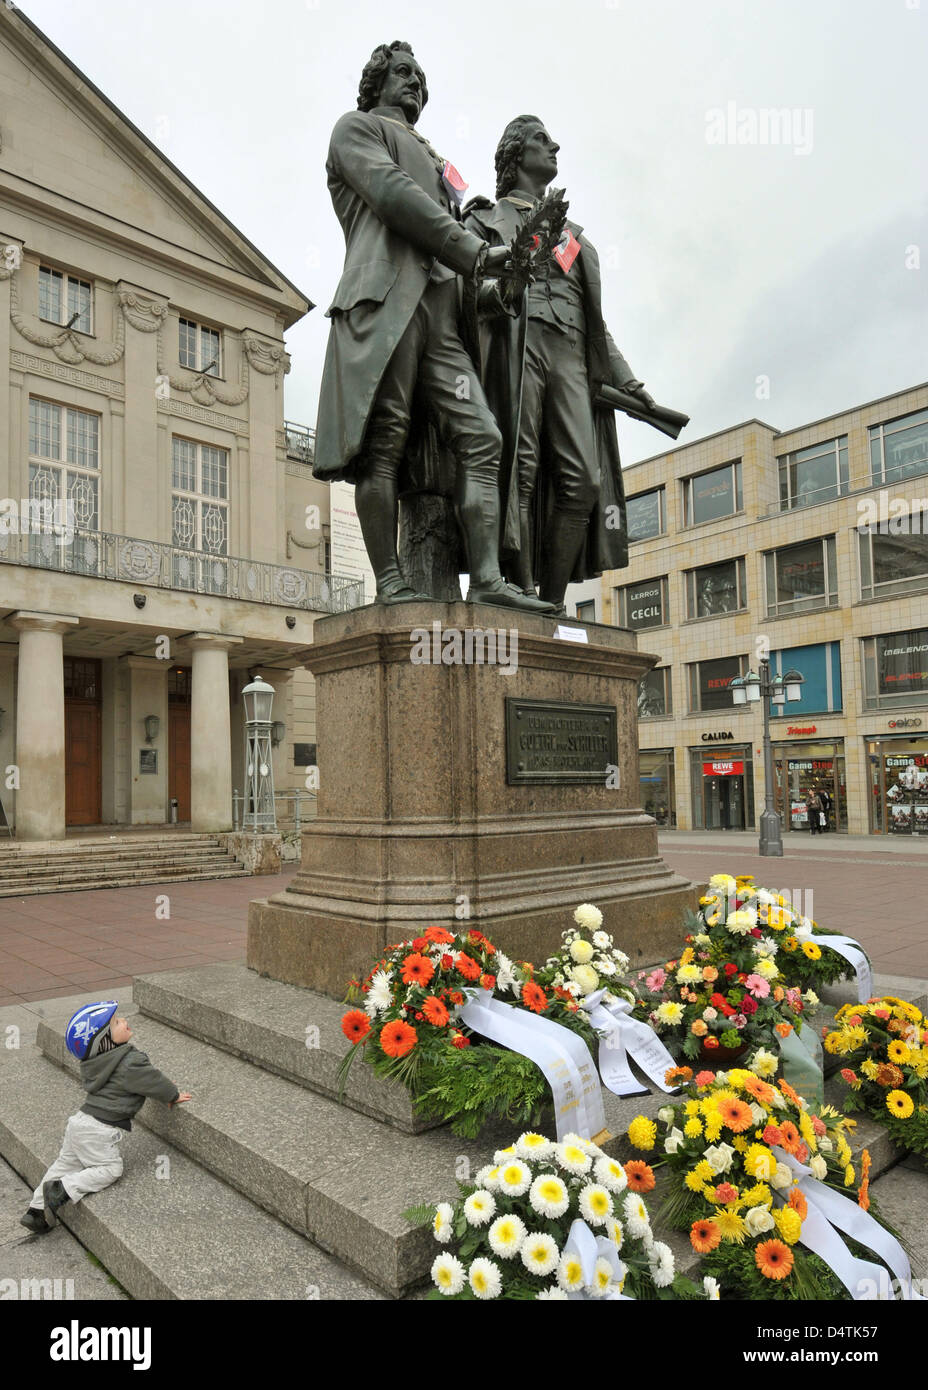 Pupils from Weimar lay wreaths in front of the Goethe-Schiller-Monument on theatre square in Weimar, Germany, 10 - Stock Image